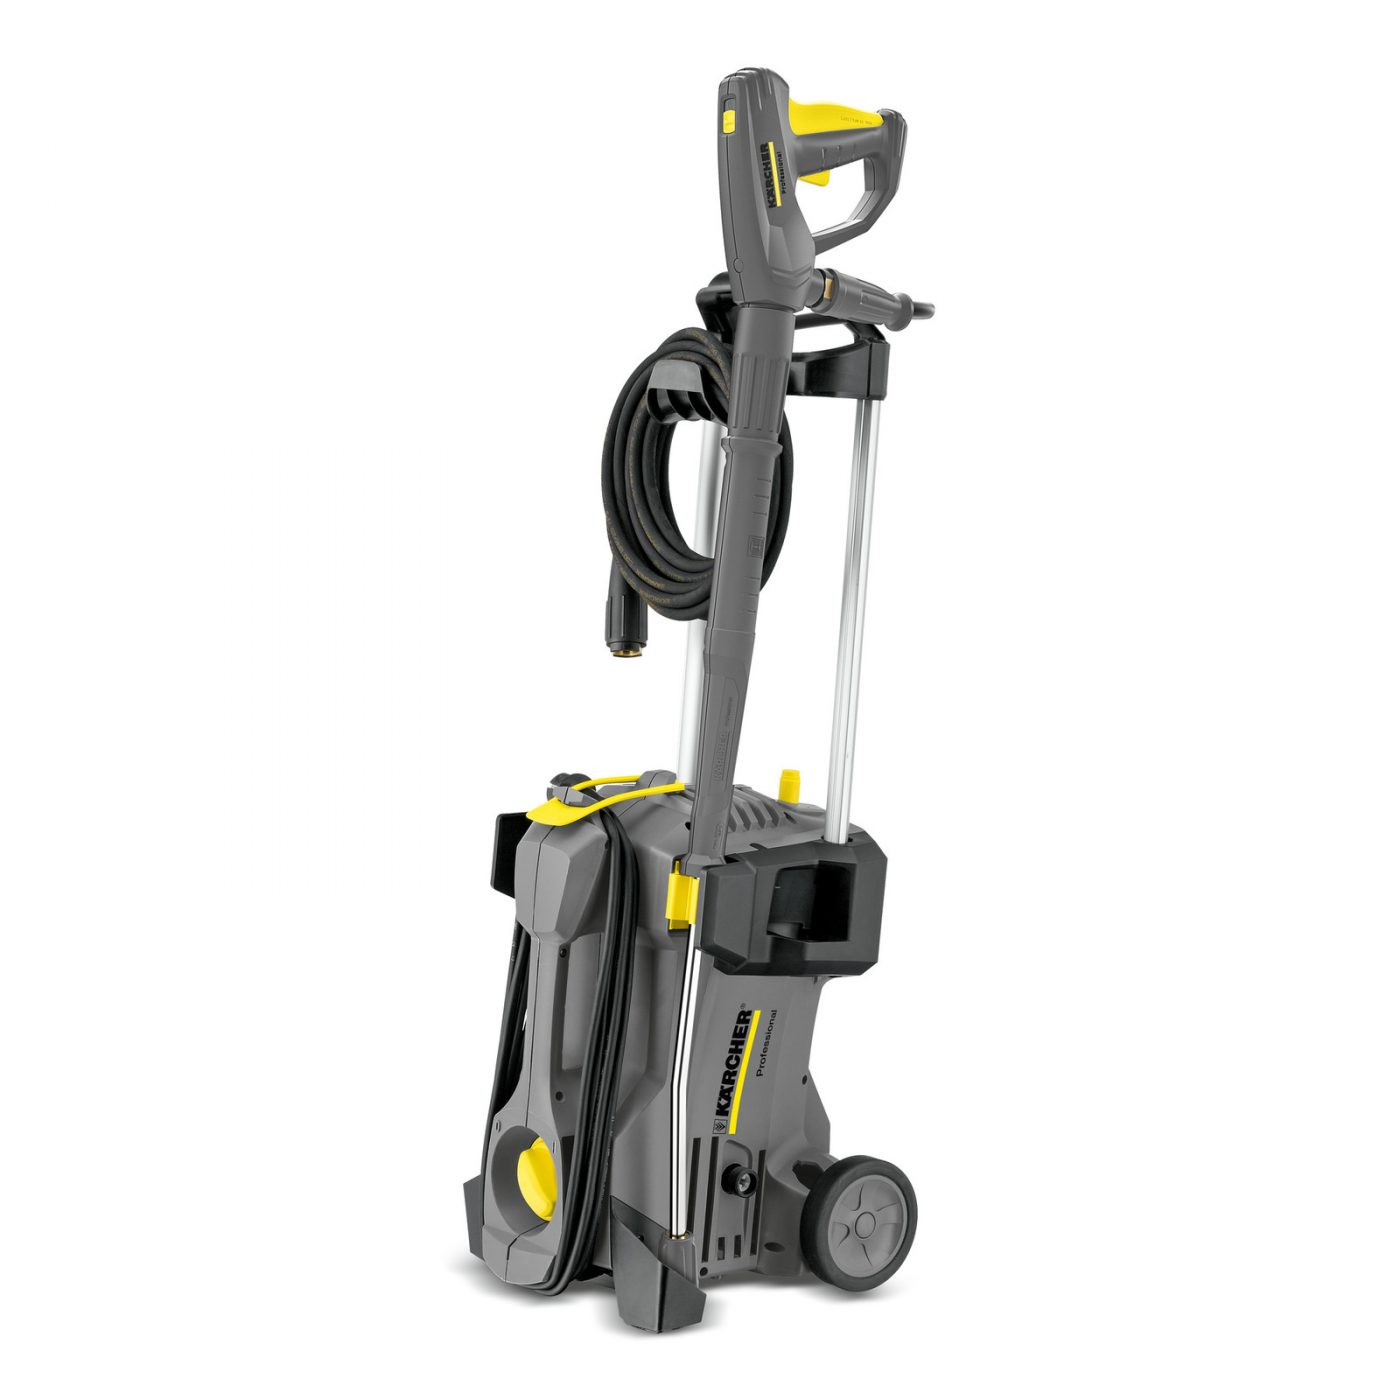 KARCHER 1.520-981.0 - ProHD 400 High Pressure Washer